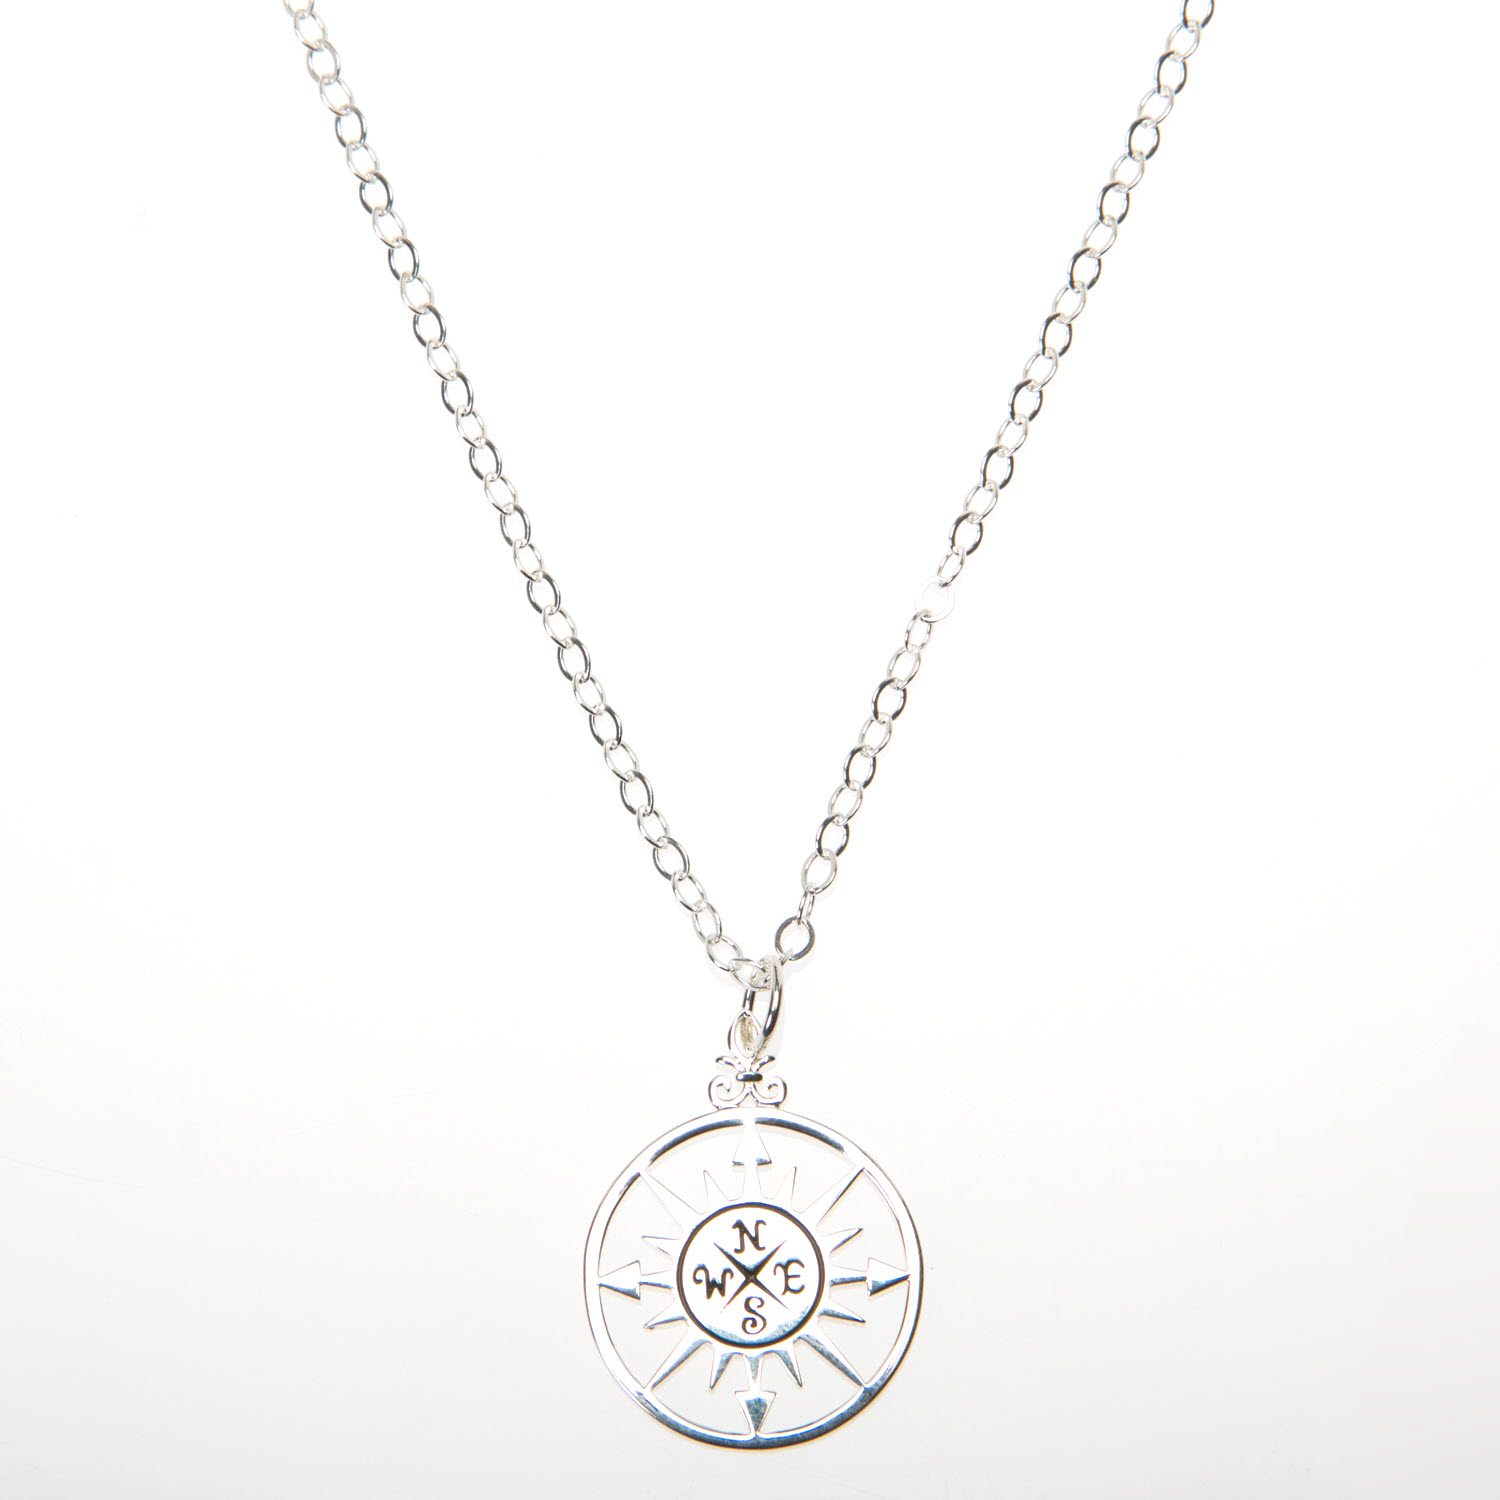 i of be lost products backpackers direction matter you necklace life no where rosa compass vila shop travelers without d